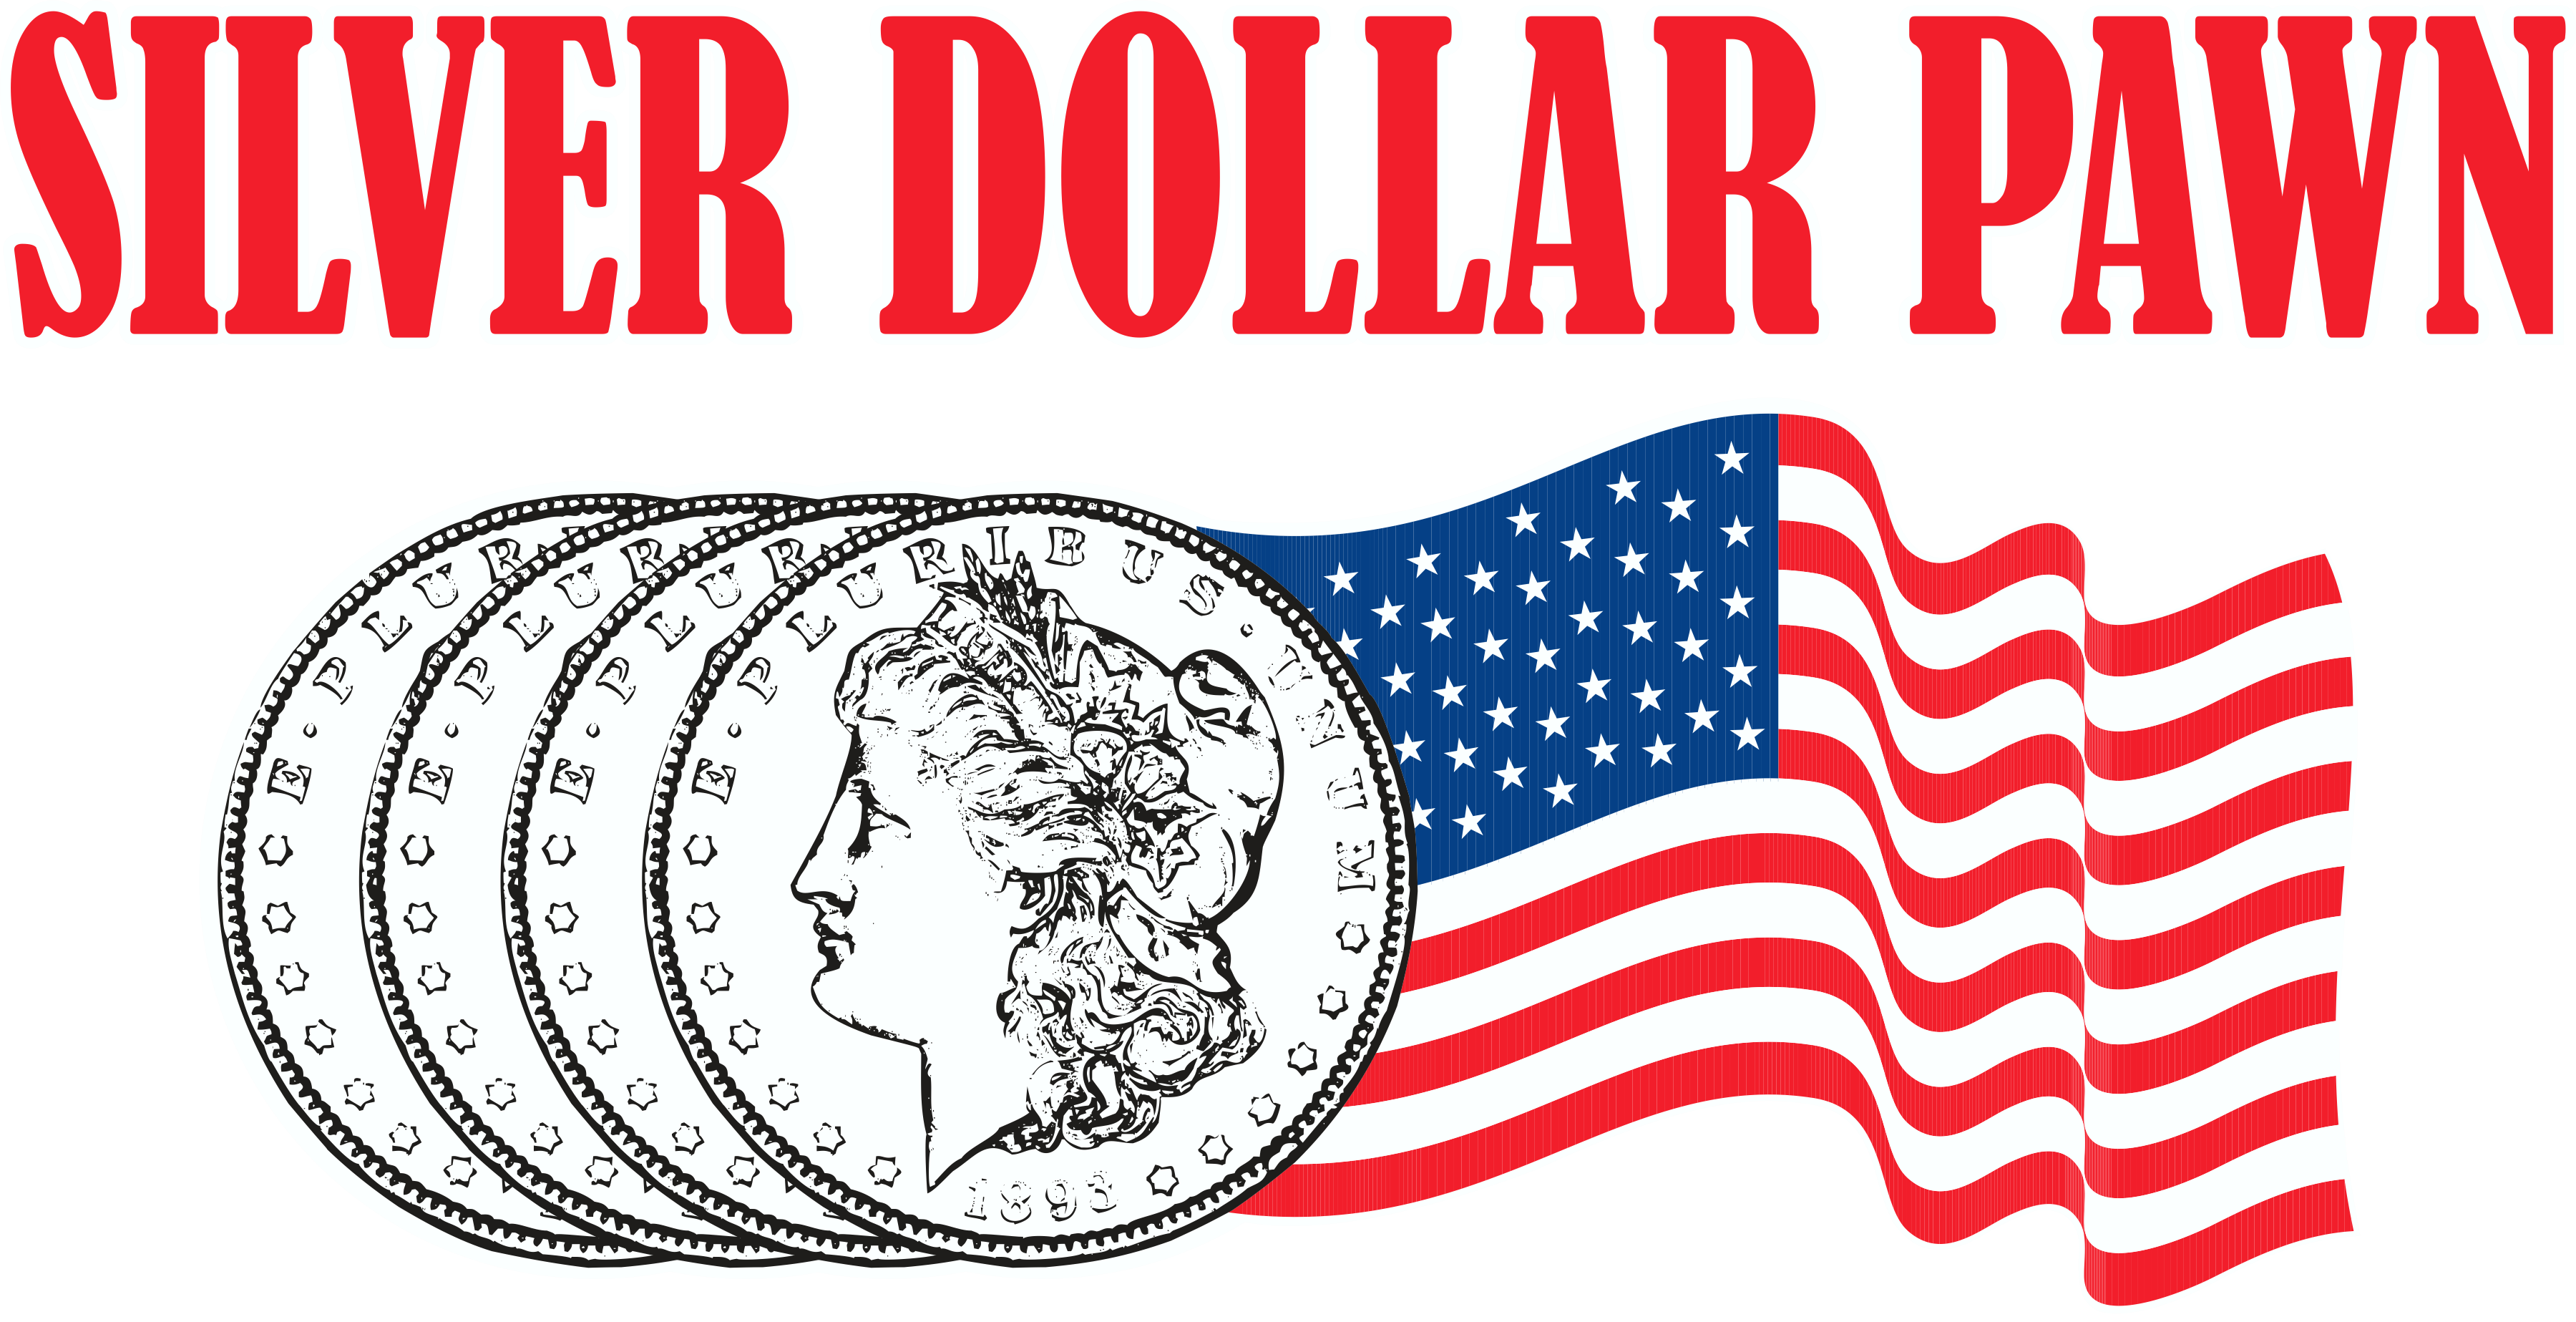 Silver Dollar Pawn Exchange